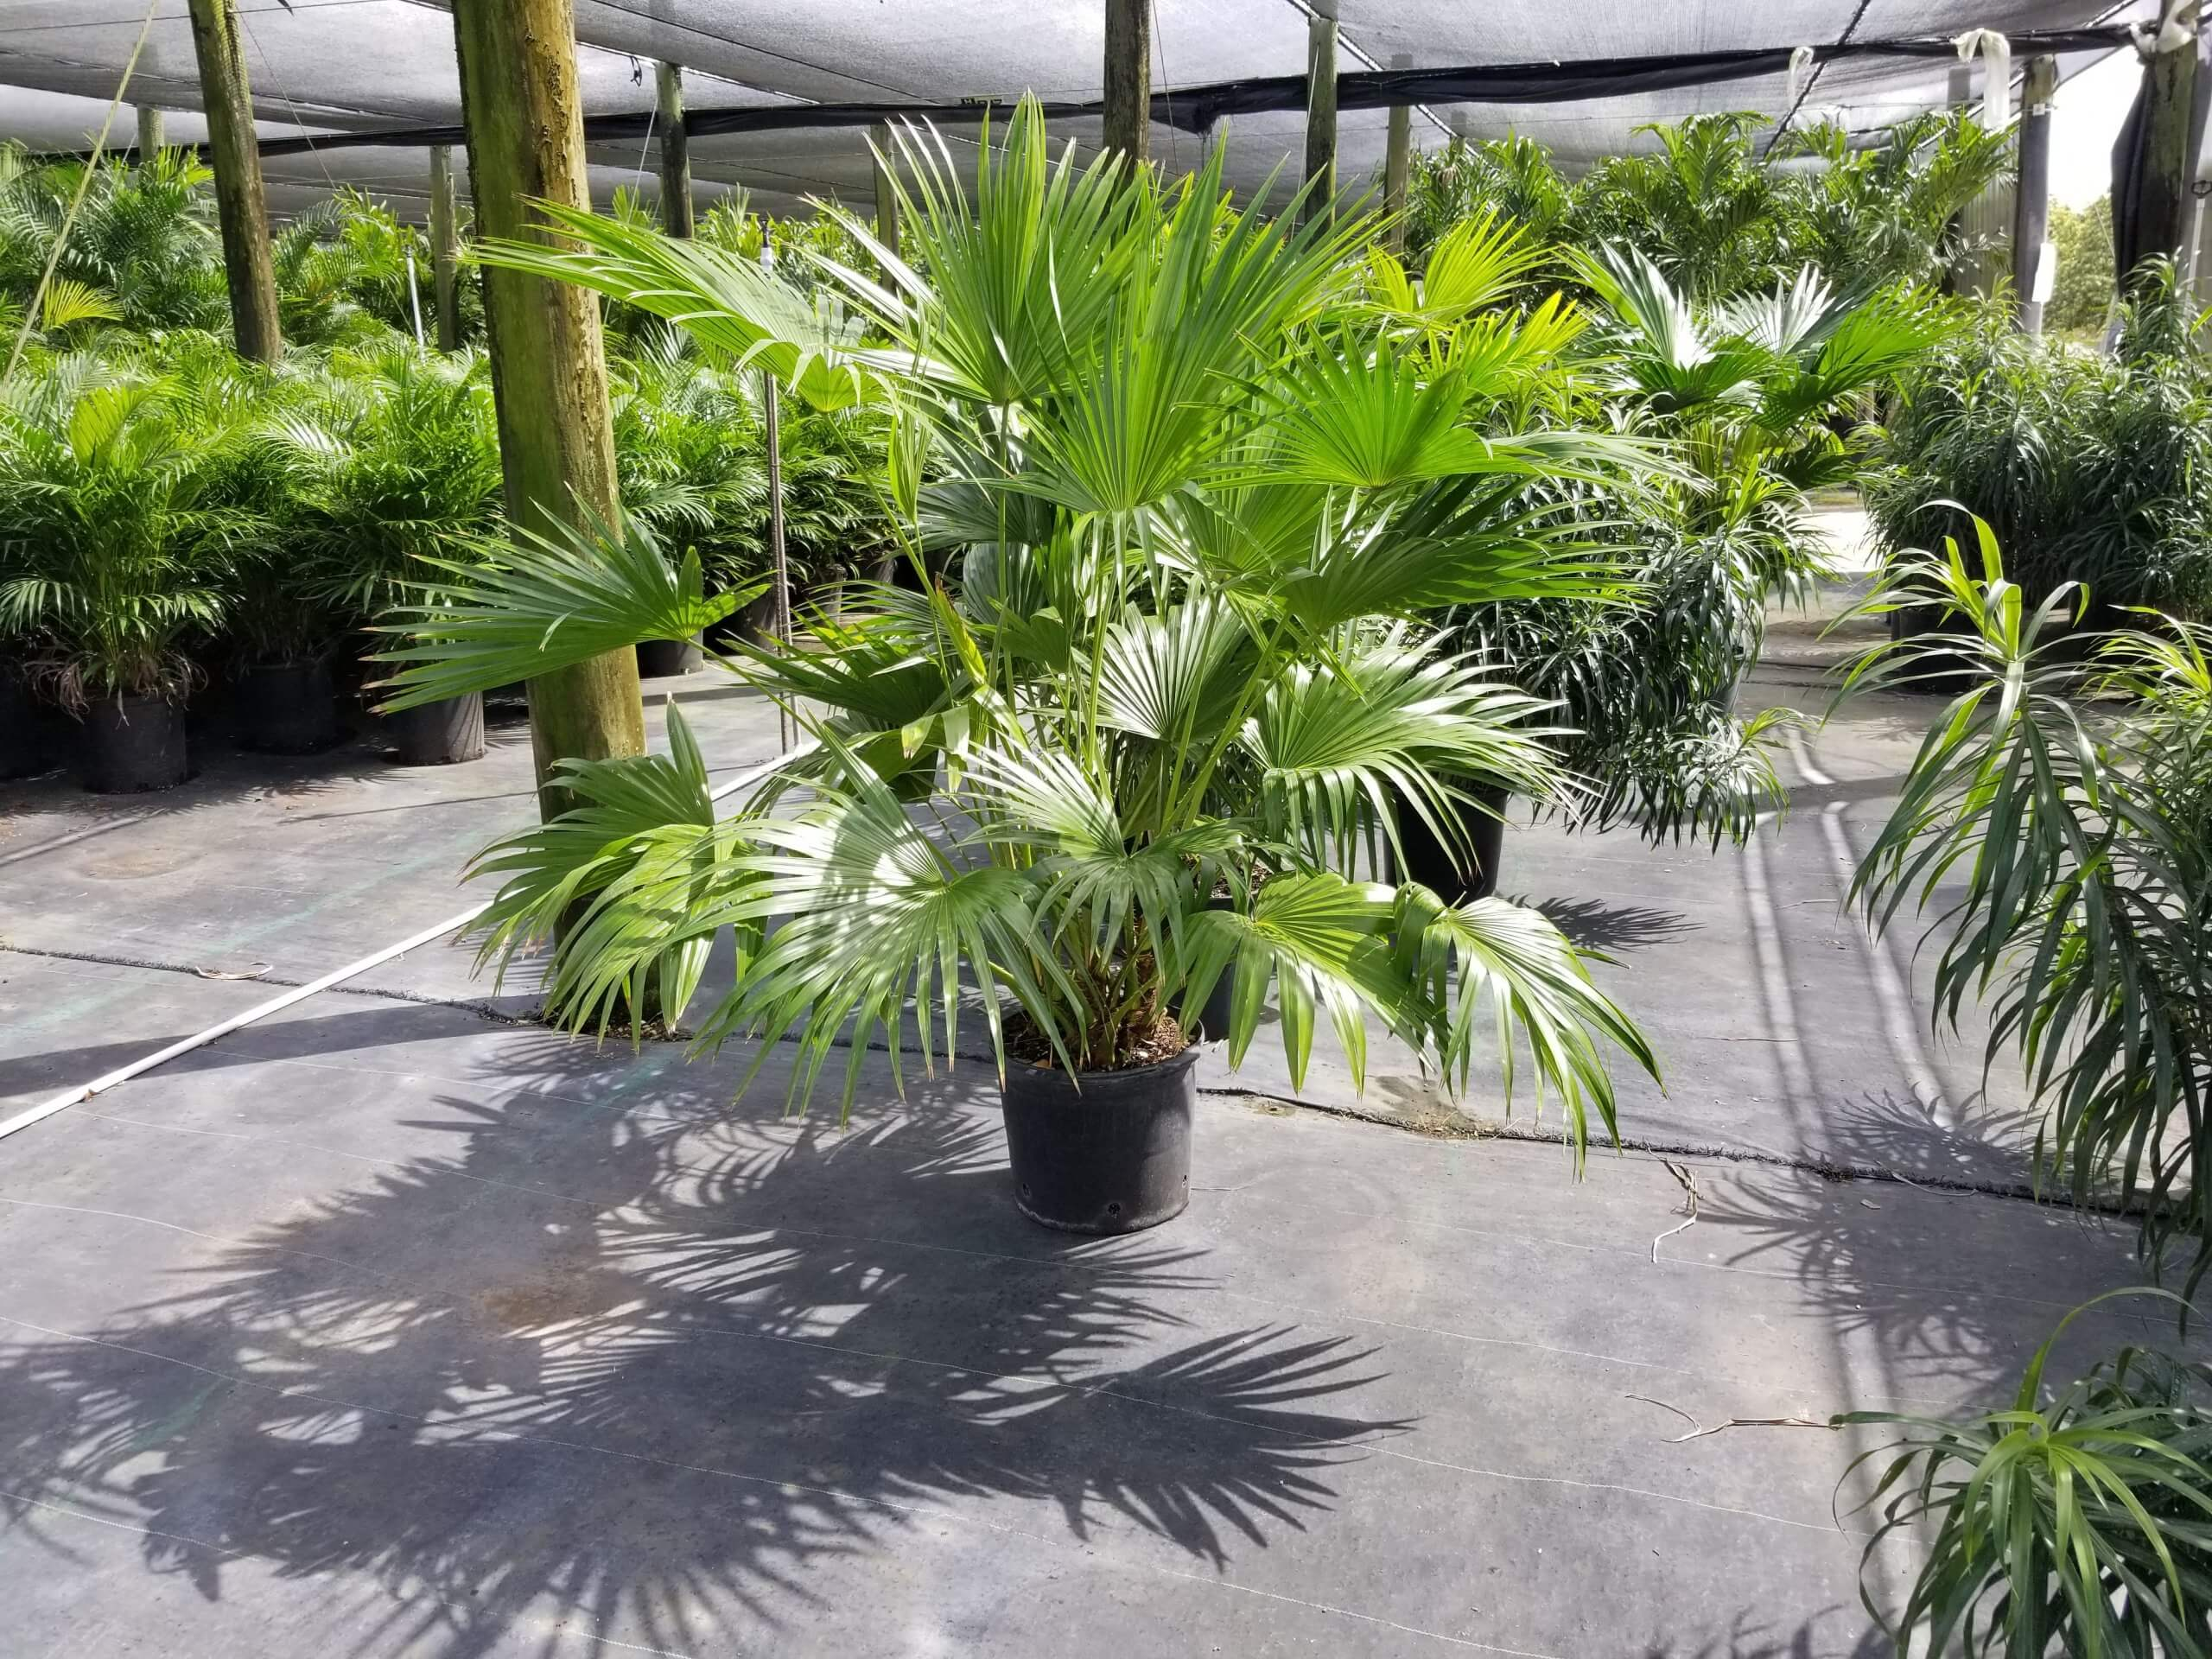 Chinese Fan Palm Trees